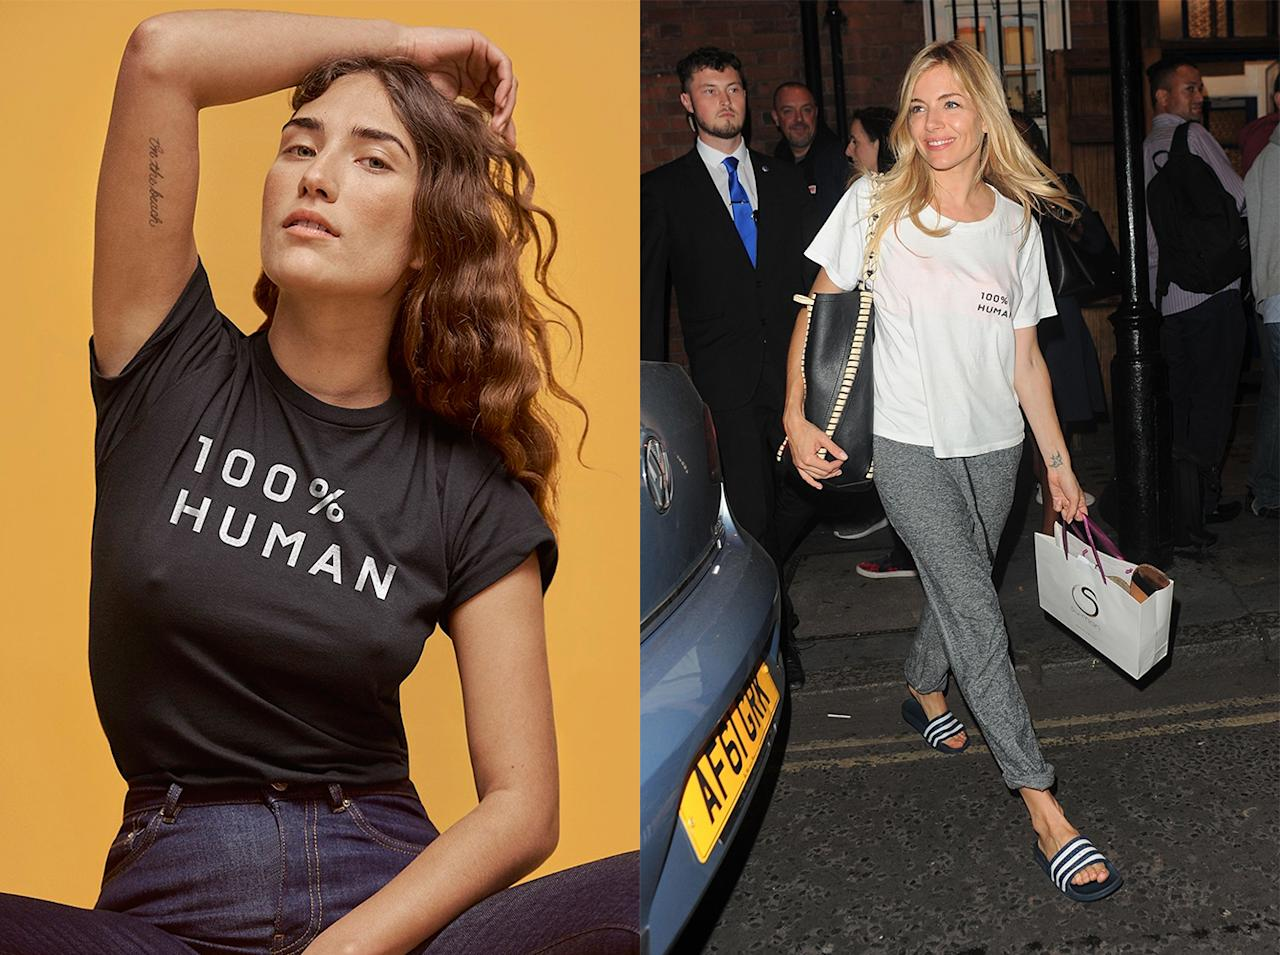 "<p>Everlane's ""100% Human"" T-shirts and other products give $5 from the purchase of each item to the American Civil Liberties Union. (Photo: Everlane; Backgrid) </p>"